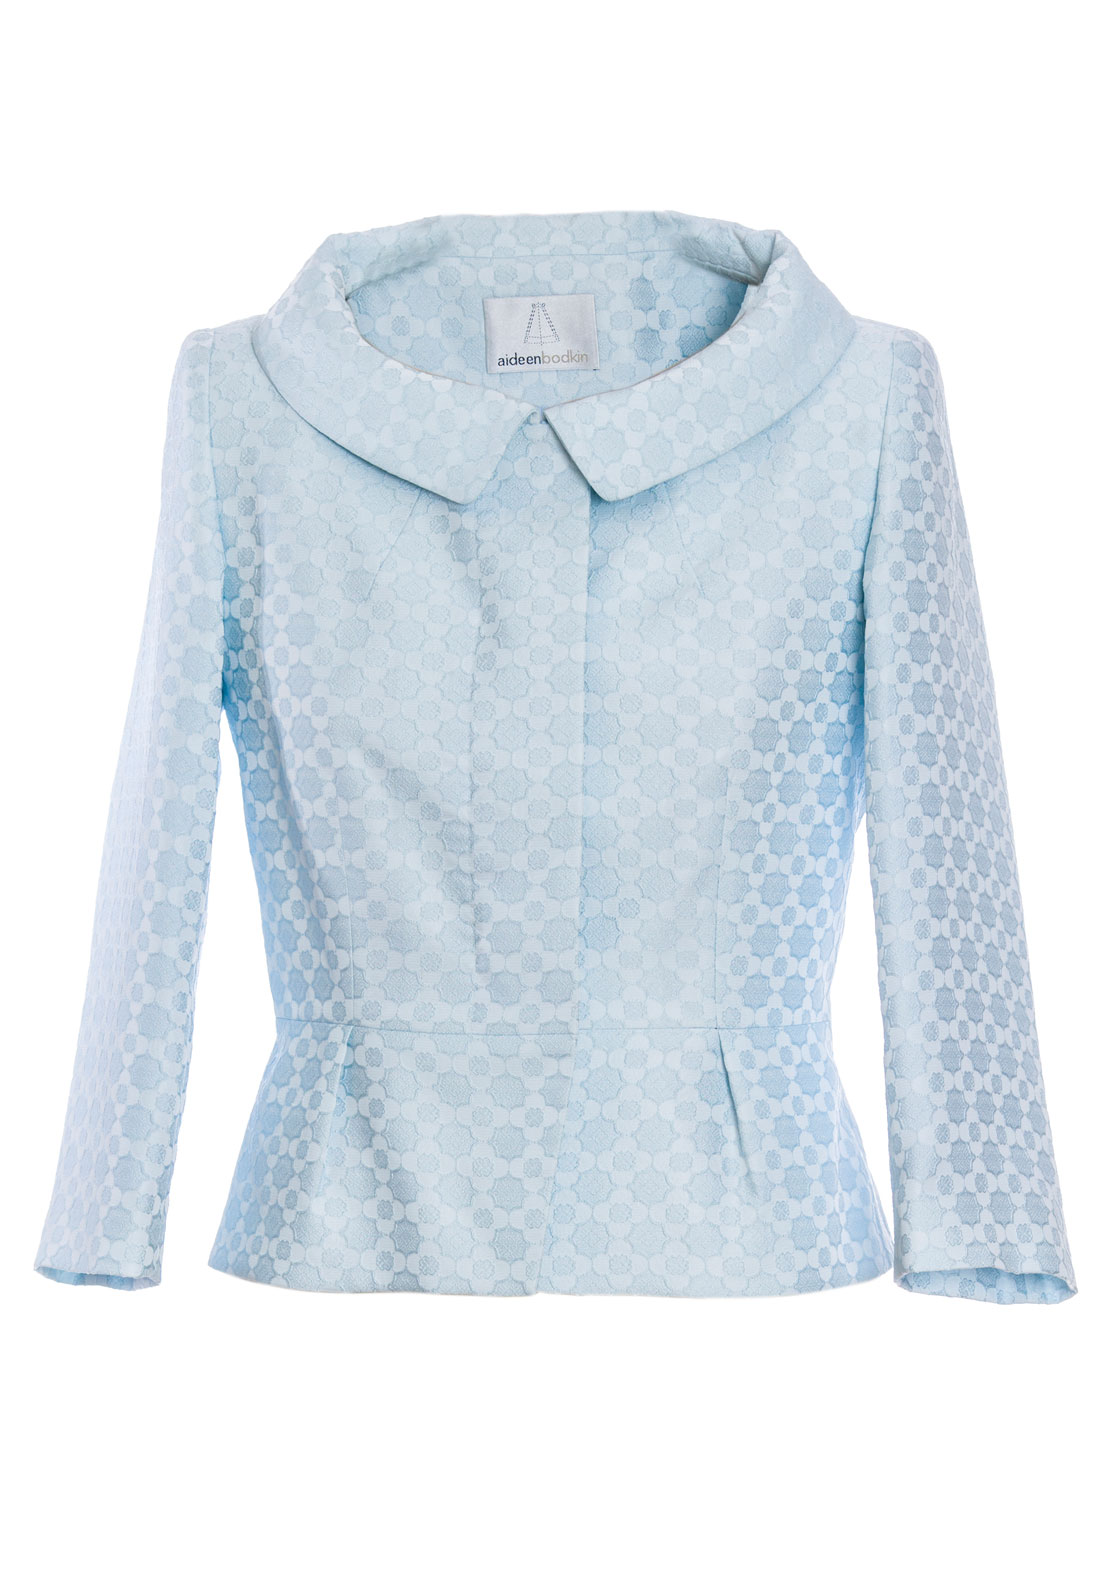 Aideen Bodkin Melia Embossed Jacket, Aqua